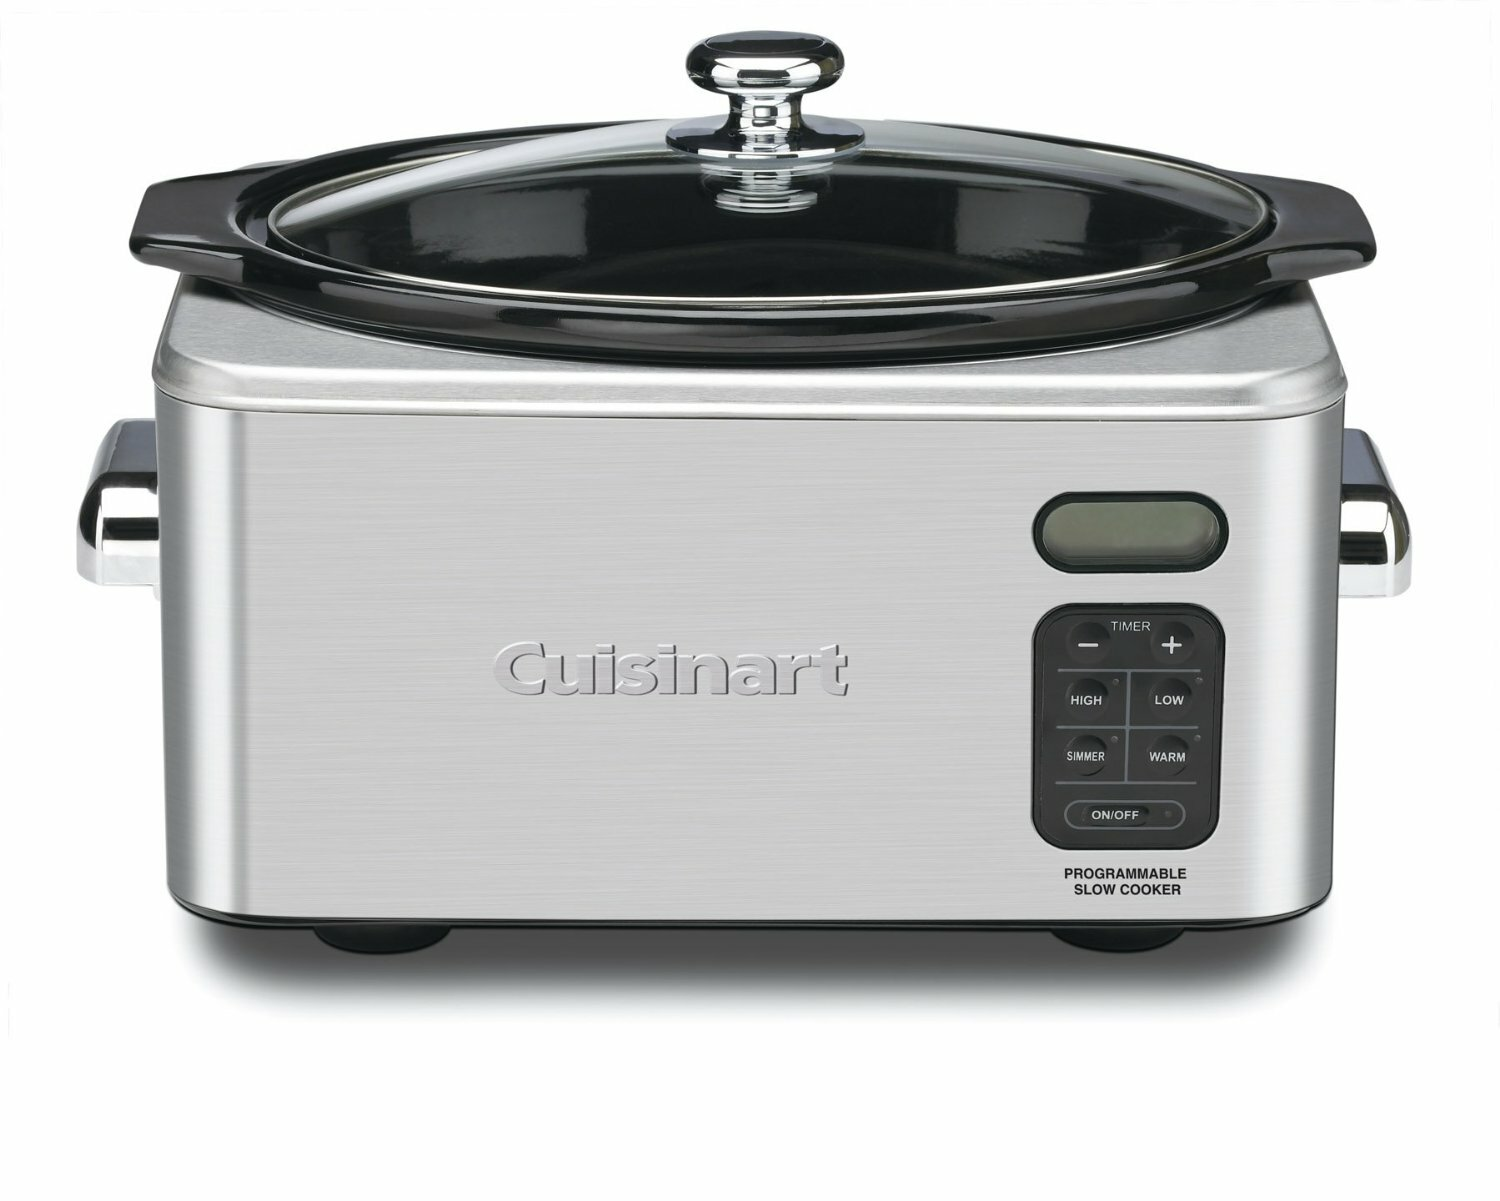 Cuisinart 6 5 Quart Programmable Slow Cooker Reviews Birch Lane